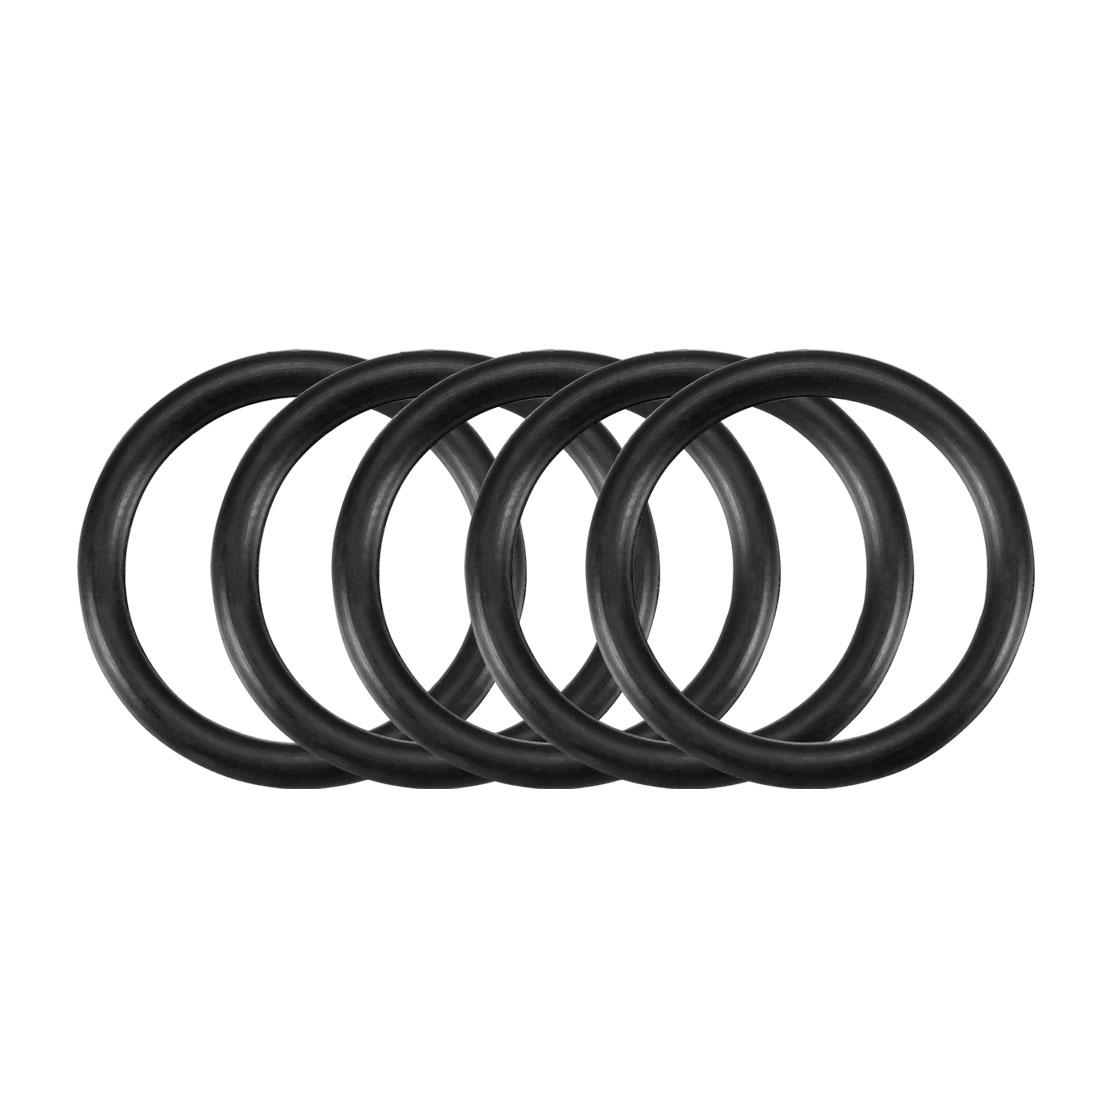 30Pcs Black 18 x 2mm Industrial Flexible Rubber O Ring Oil Sealing Grommets